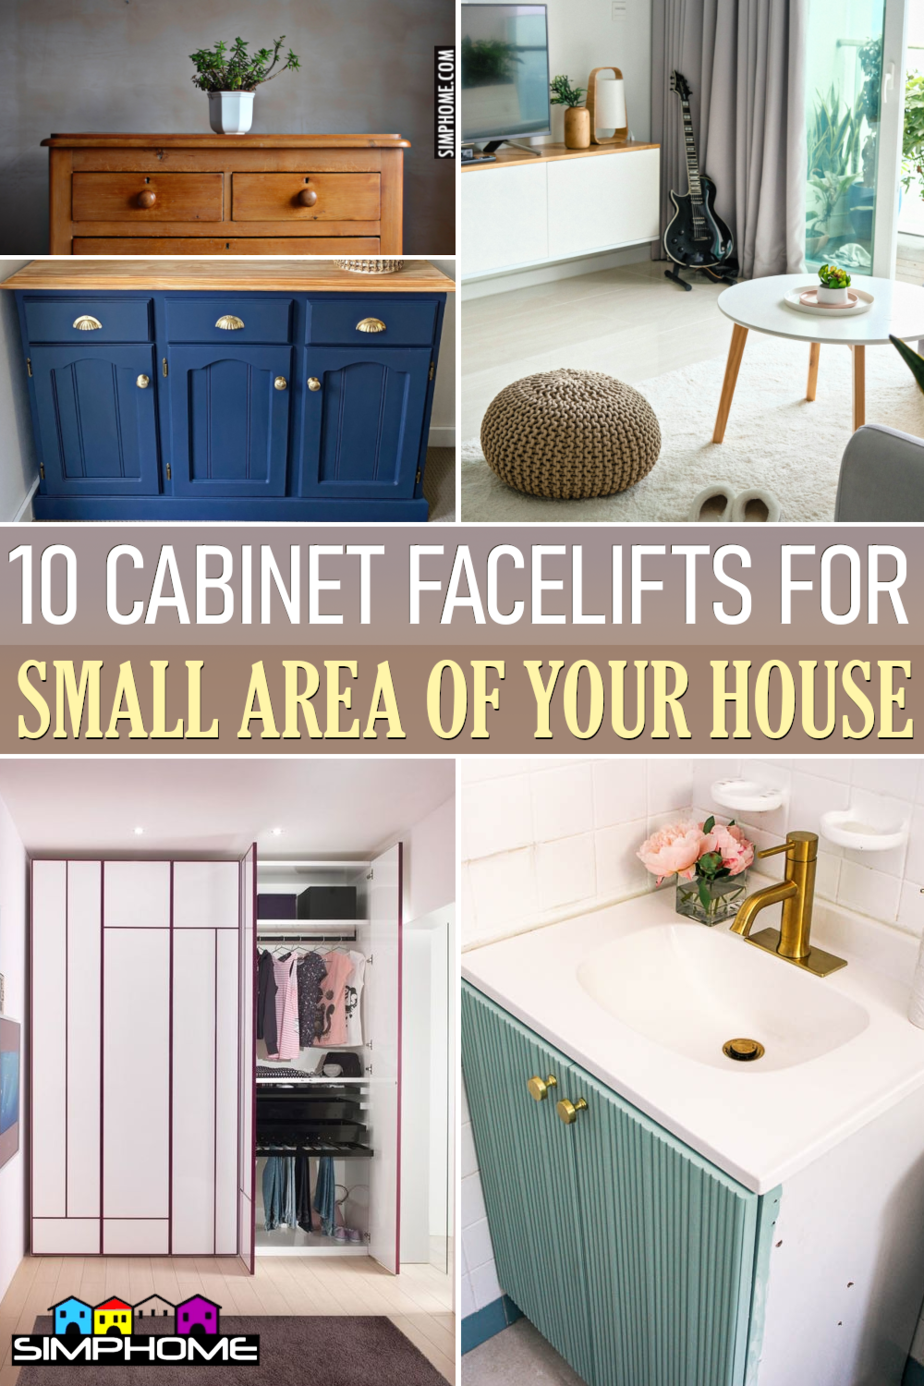 10 Cabinet Facelifts for Small Space via Simphome.comFeatured